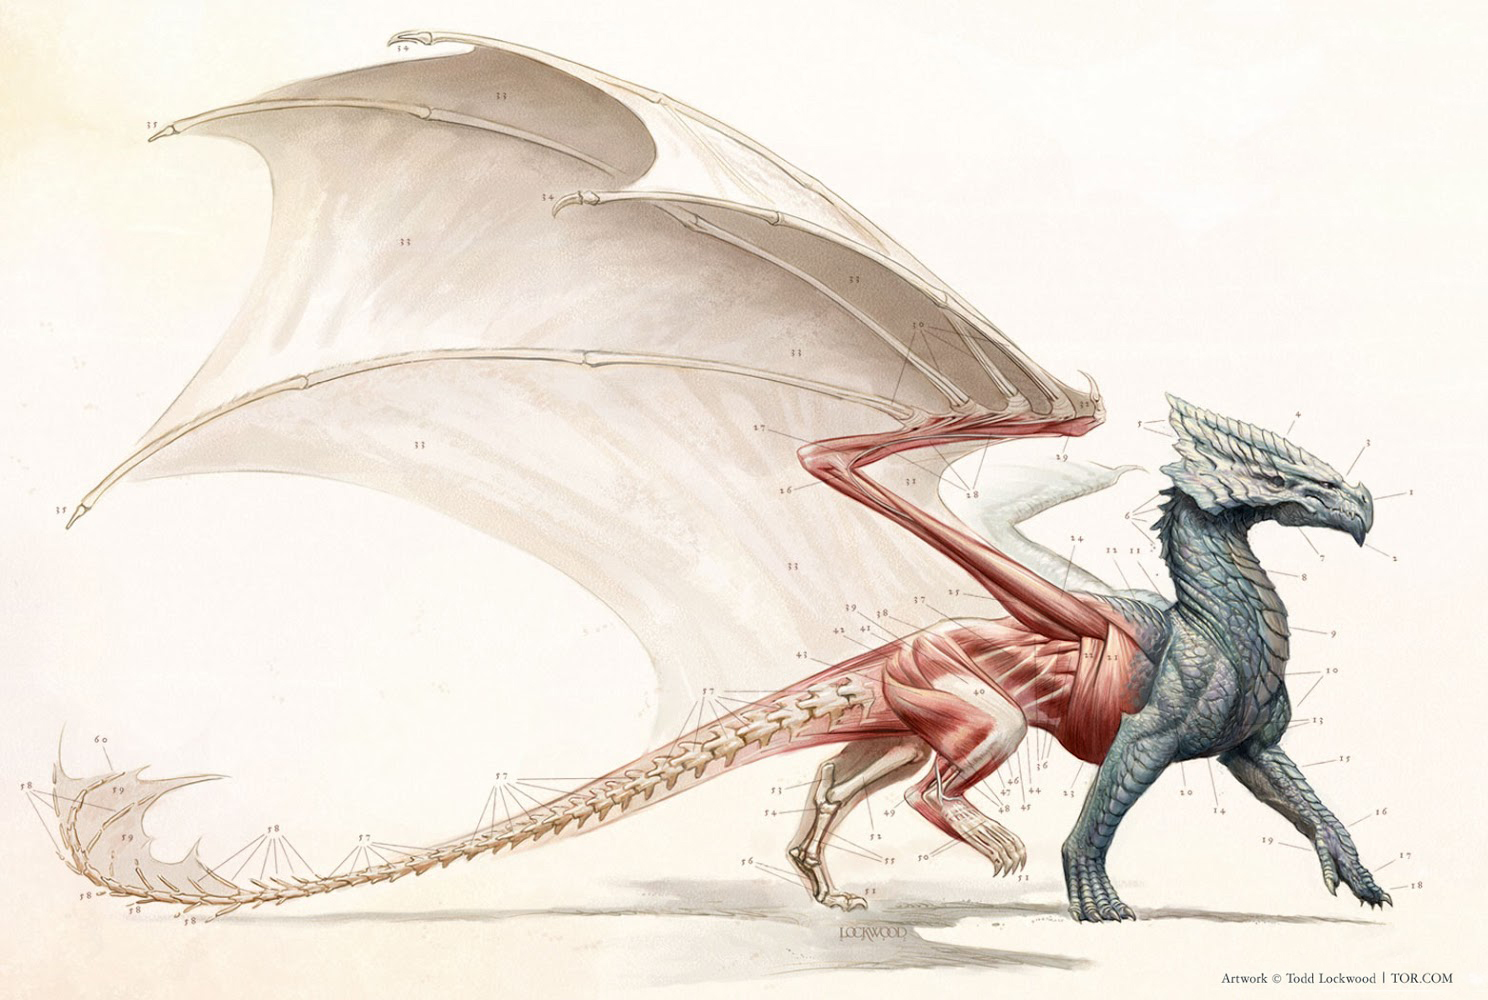 Todd Lockwood, Natural History of Dragons